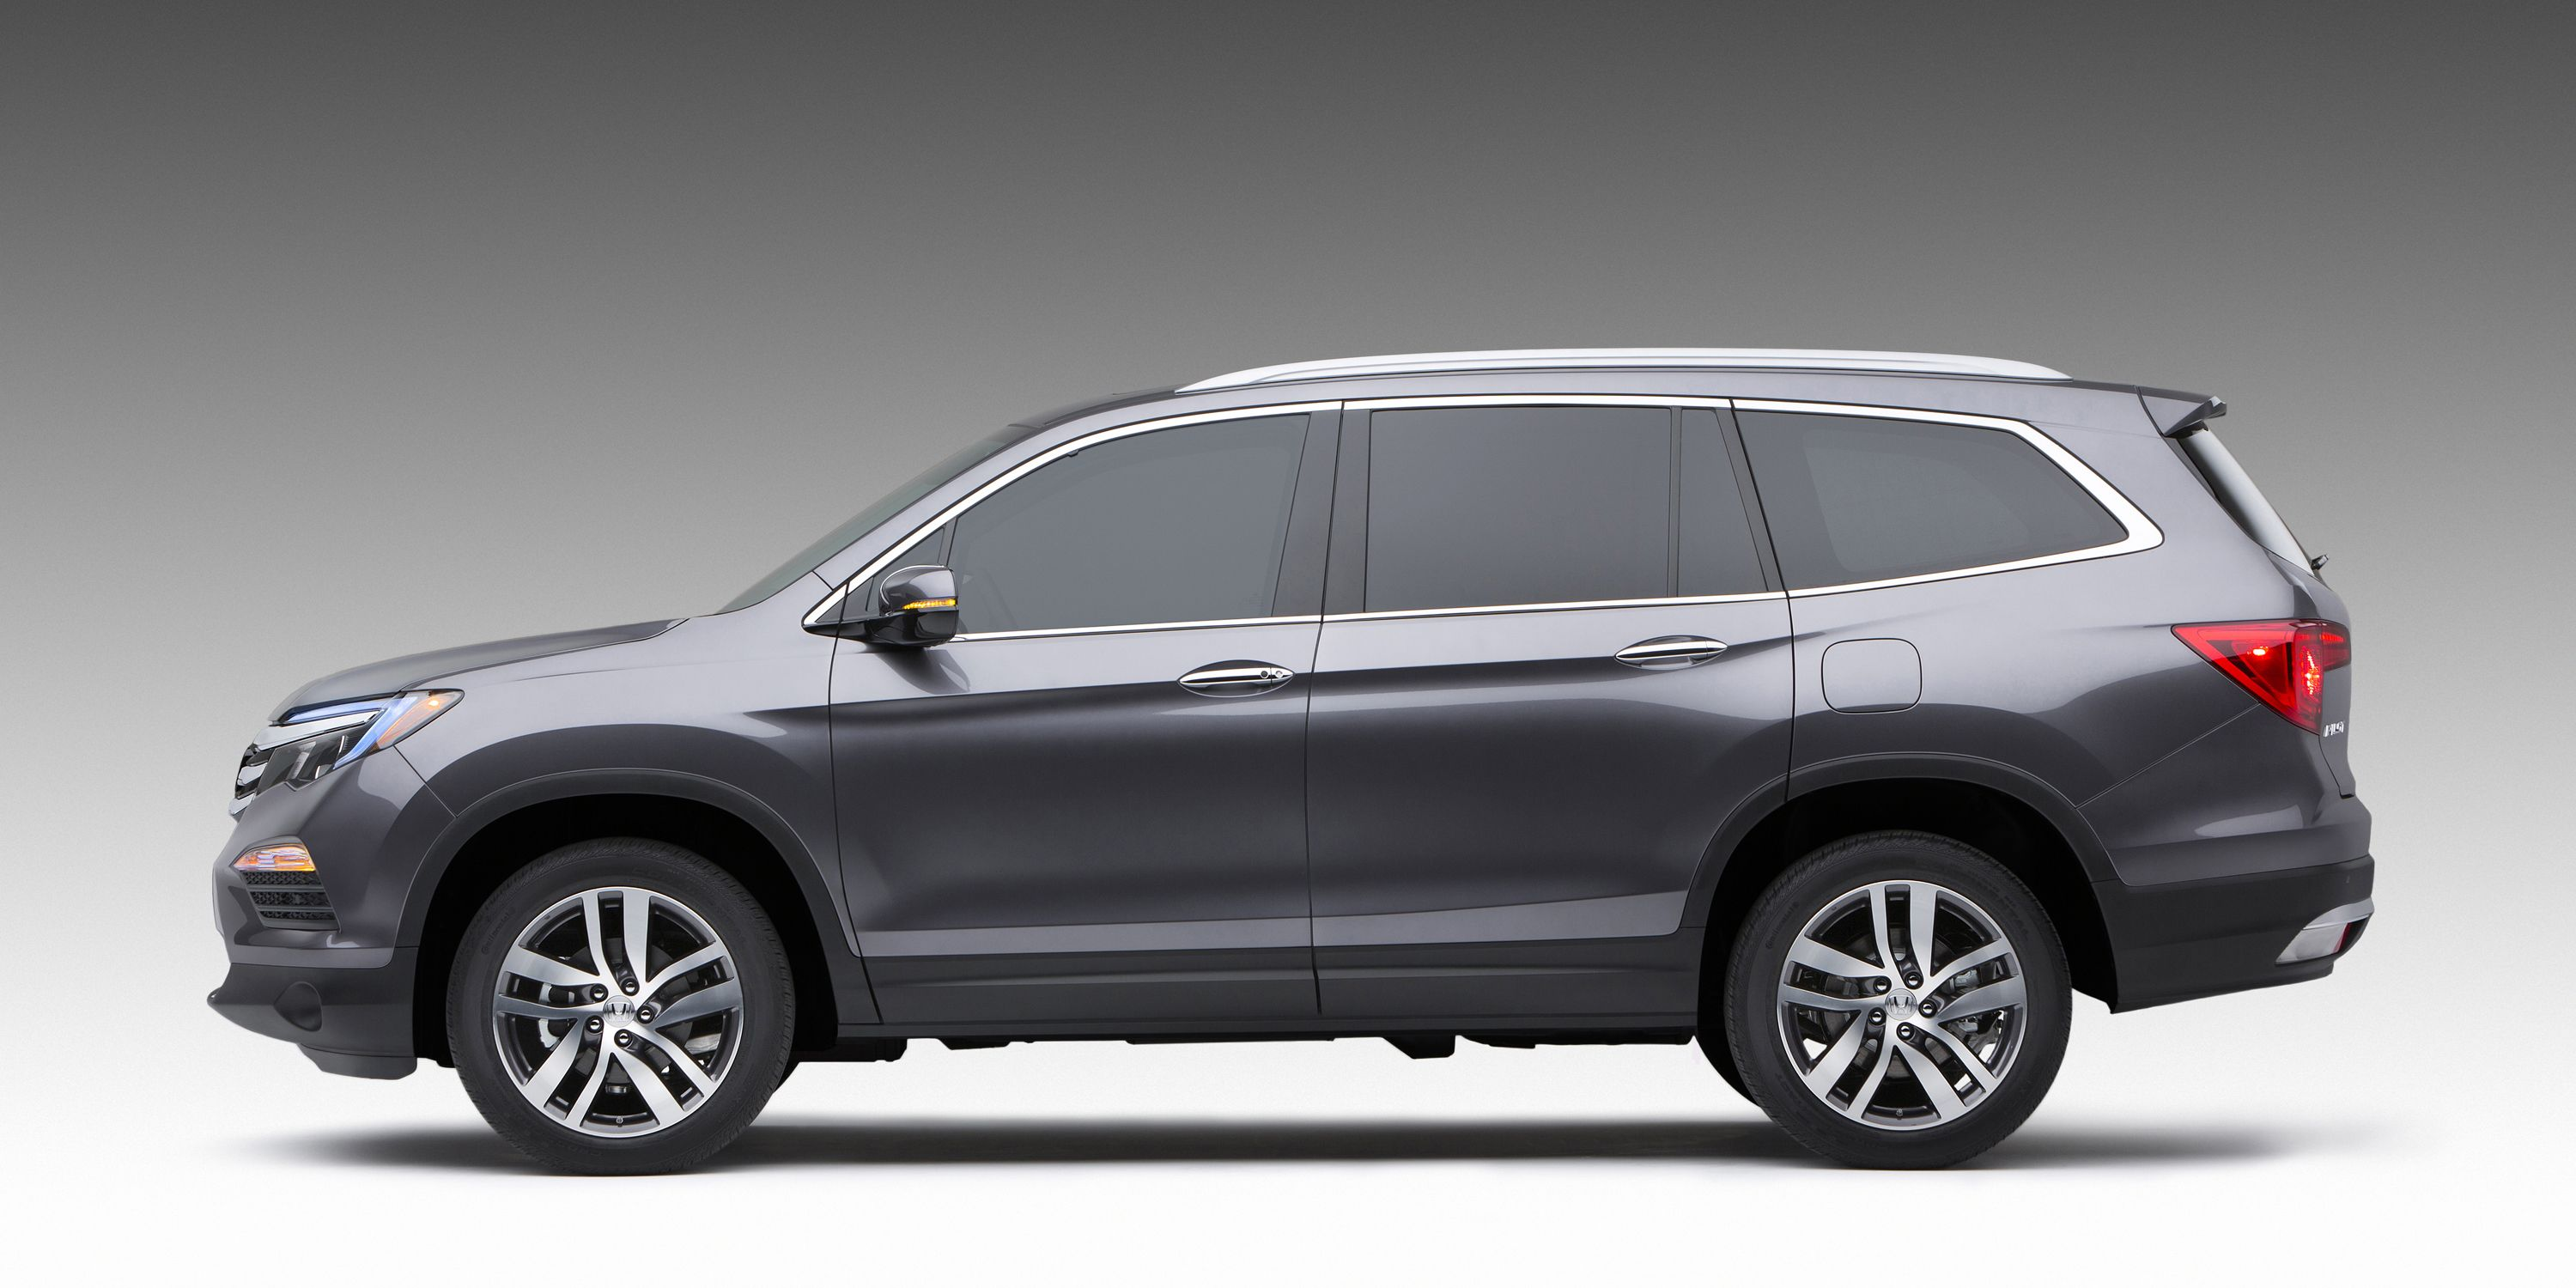 New Honda Pilot >> 2016 Honda Pilot Photo Gallery